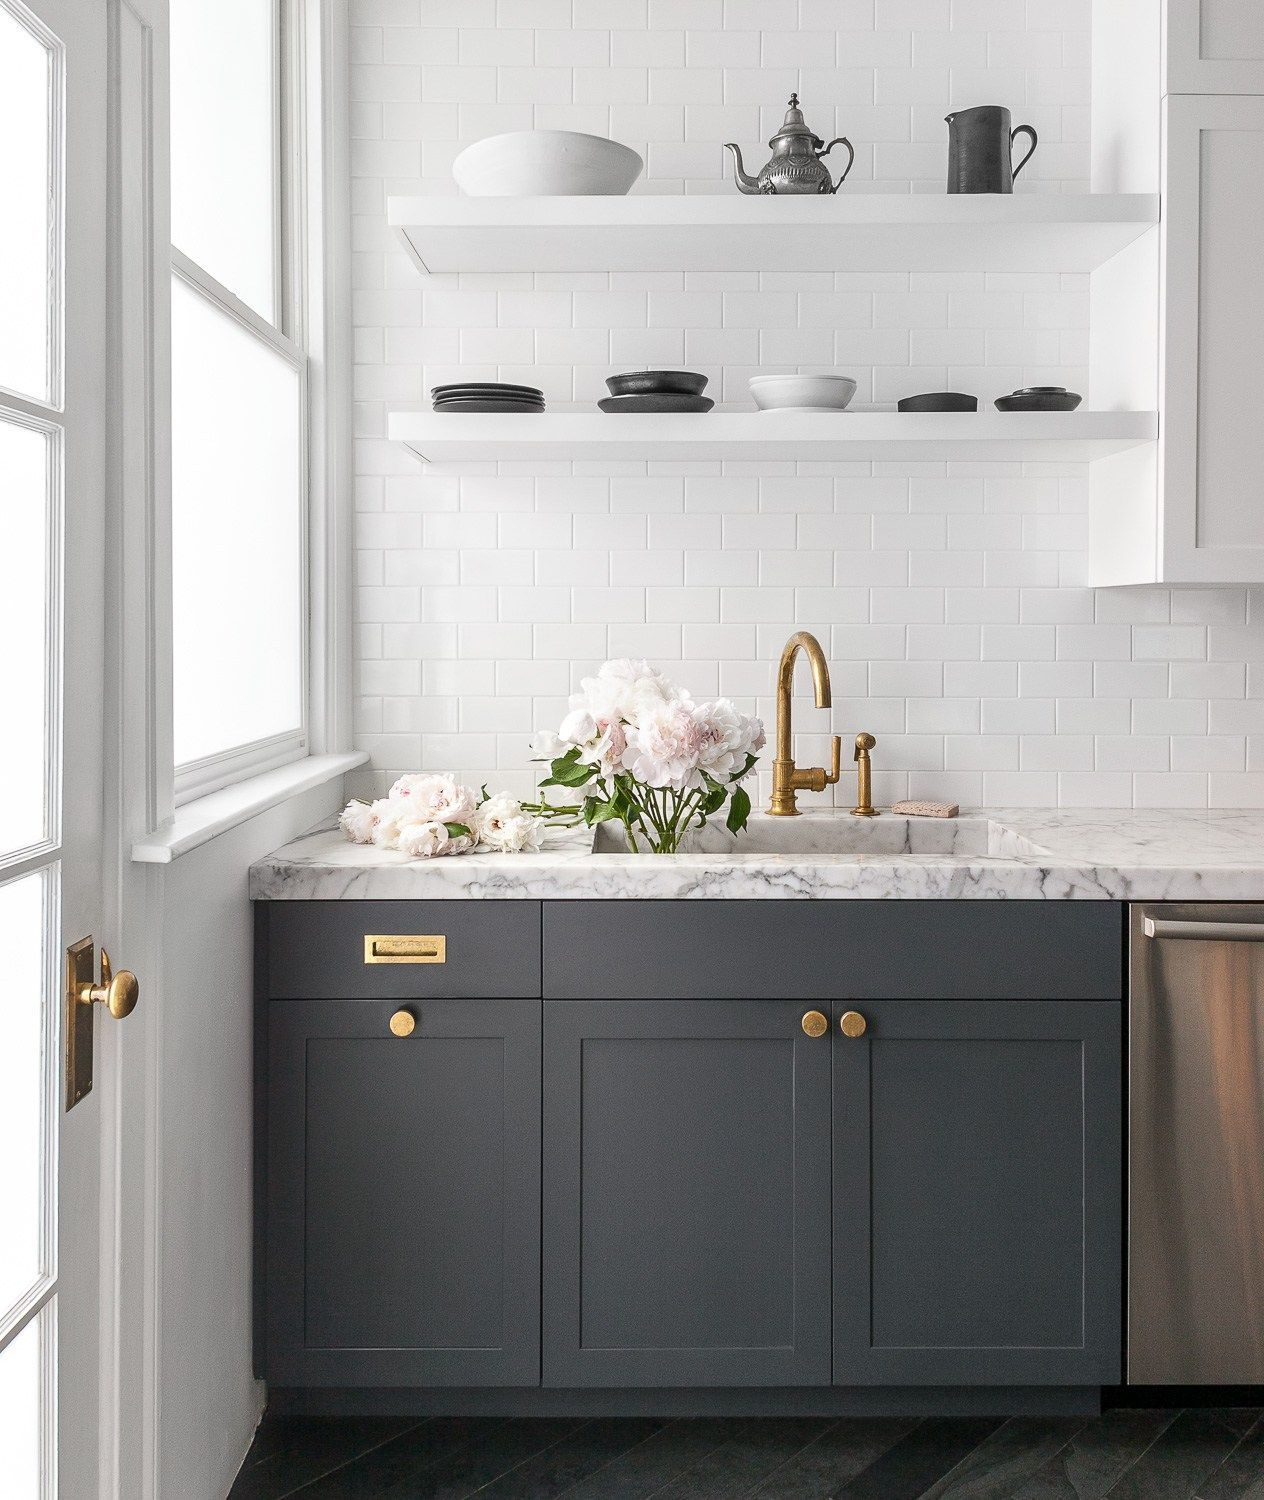 Room By Grant K Gibson At Grantkgibson Com Kitchen Design Styles Kitchen Cabinets Decor Beautiful Kitchen Designs